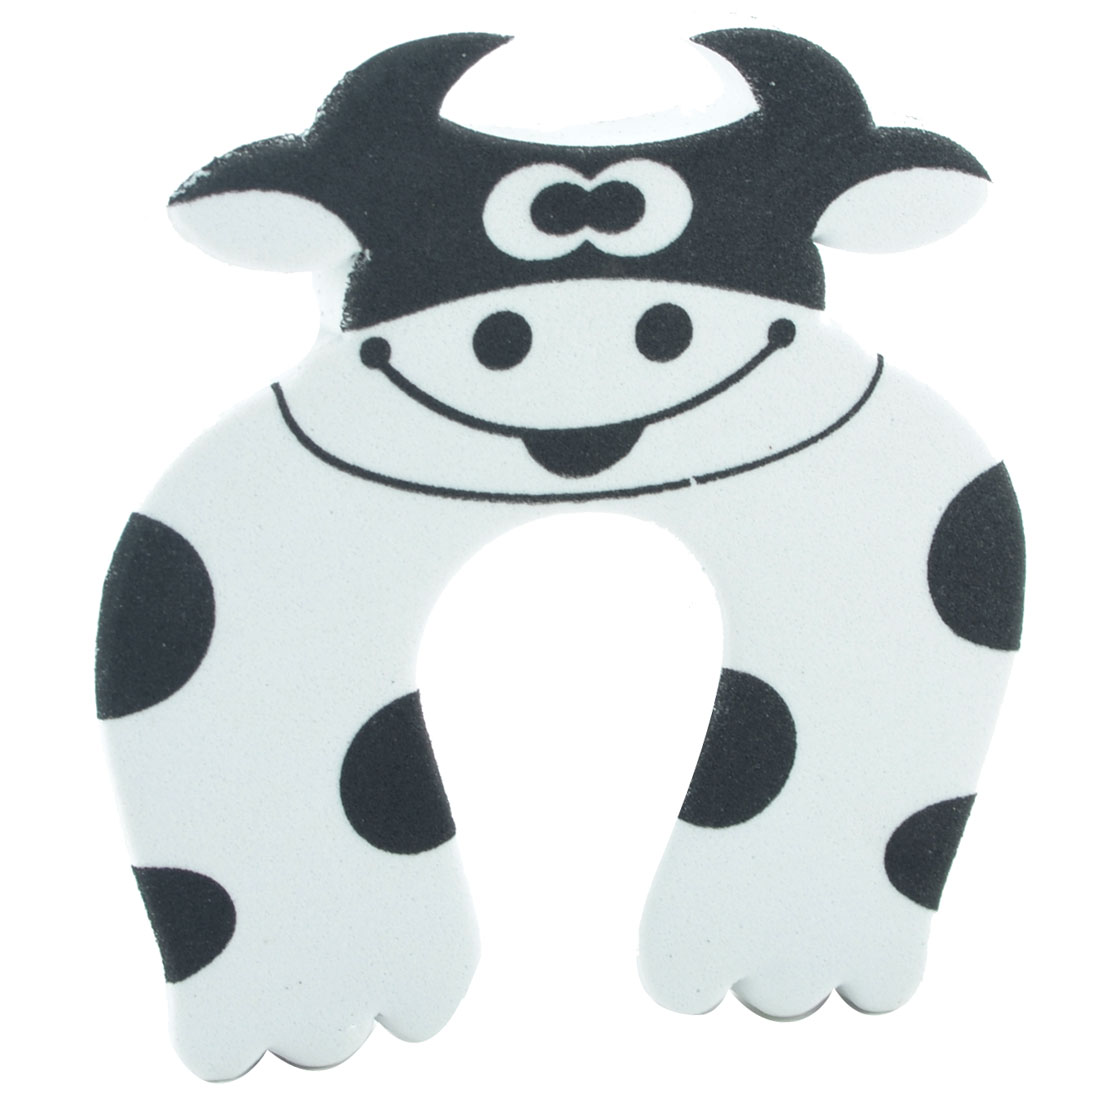 EVA Cartoon White Cow Shape Finger Protector Safety Guard Doorstop Door Stopper Lock